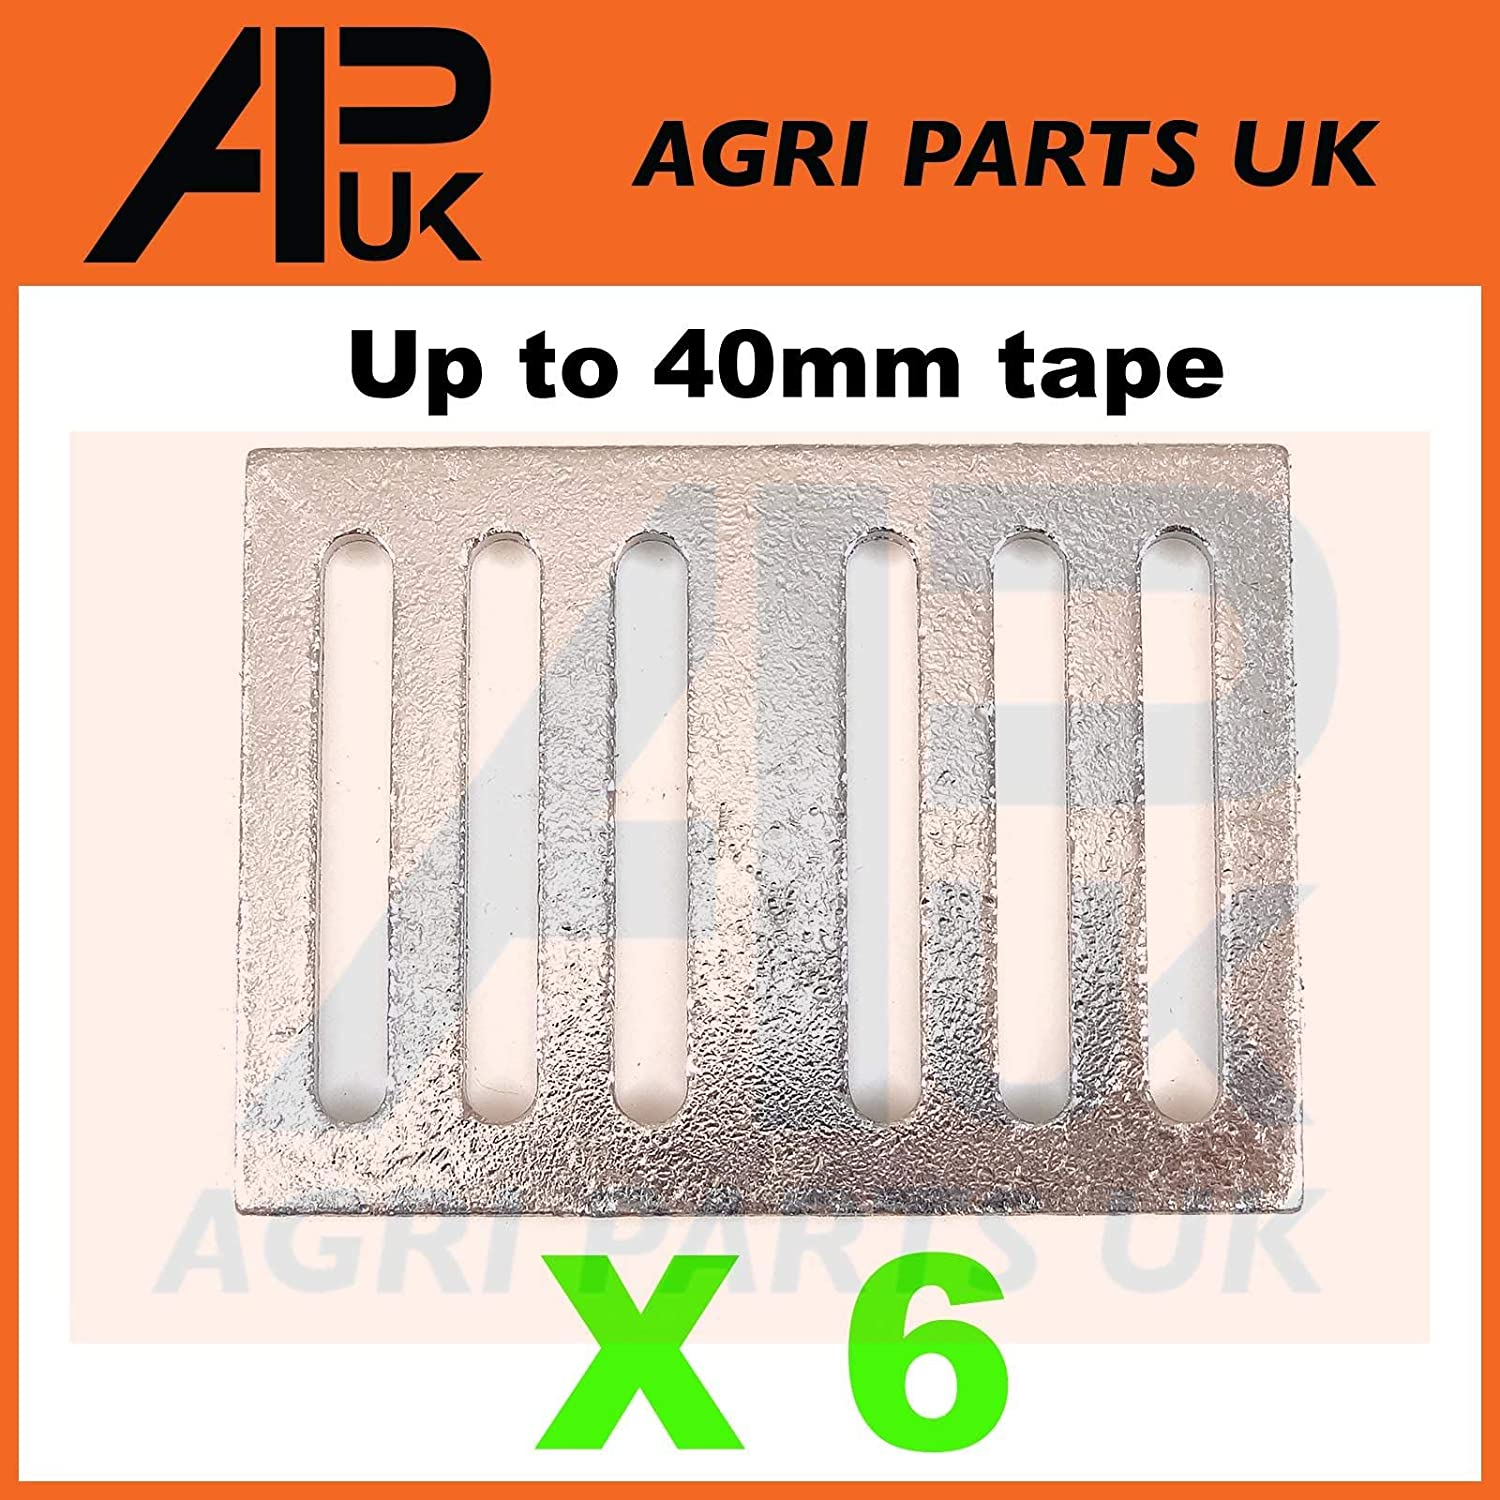 APUK 6 Electric fence fencing tape connector Plates Joiner 20/40mm Buckle connection Agri Parts UK Ltd